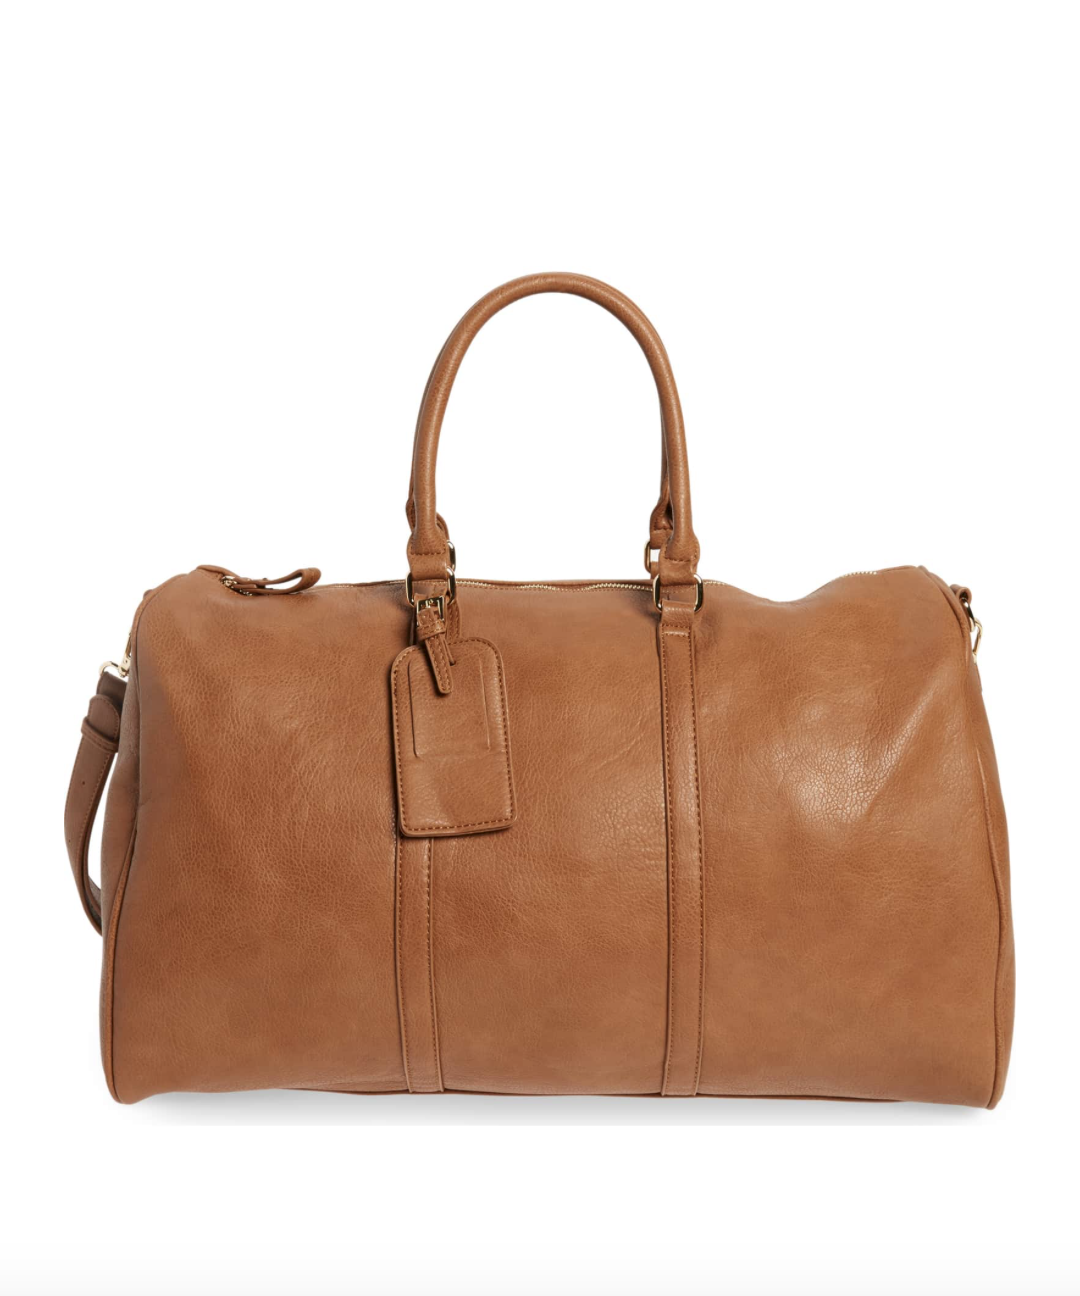 Sole Society Weekender Bag - I have this and loveee it! It's the perfect size and fits so much. Plus the leather is super cute. Under $50!